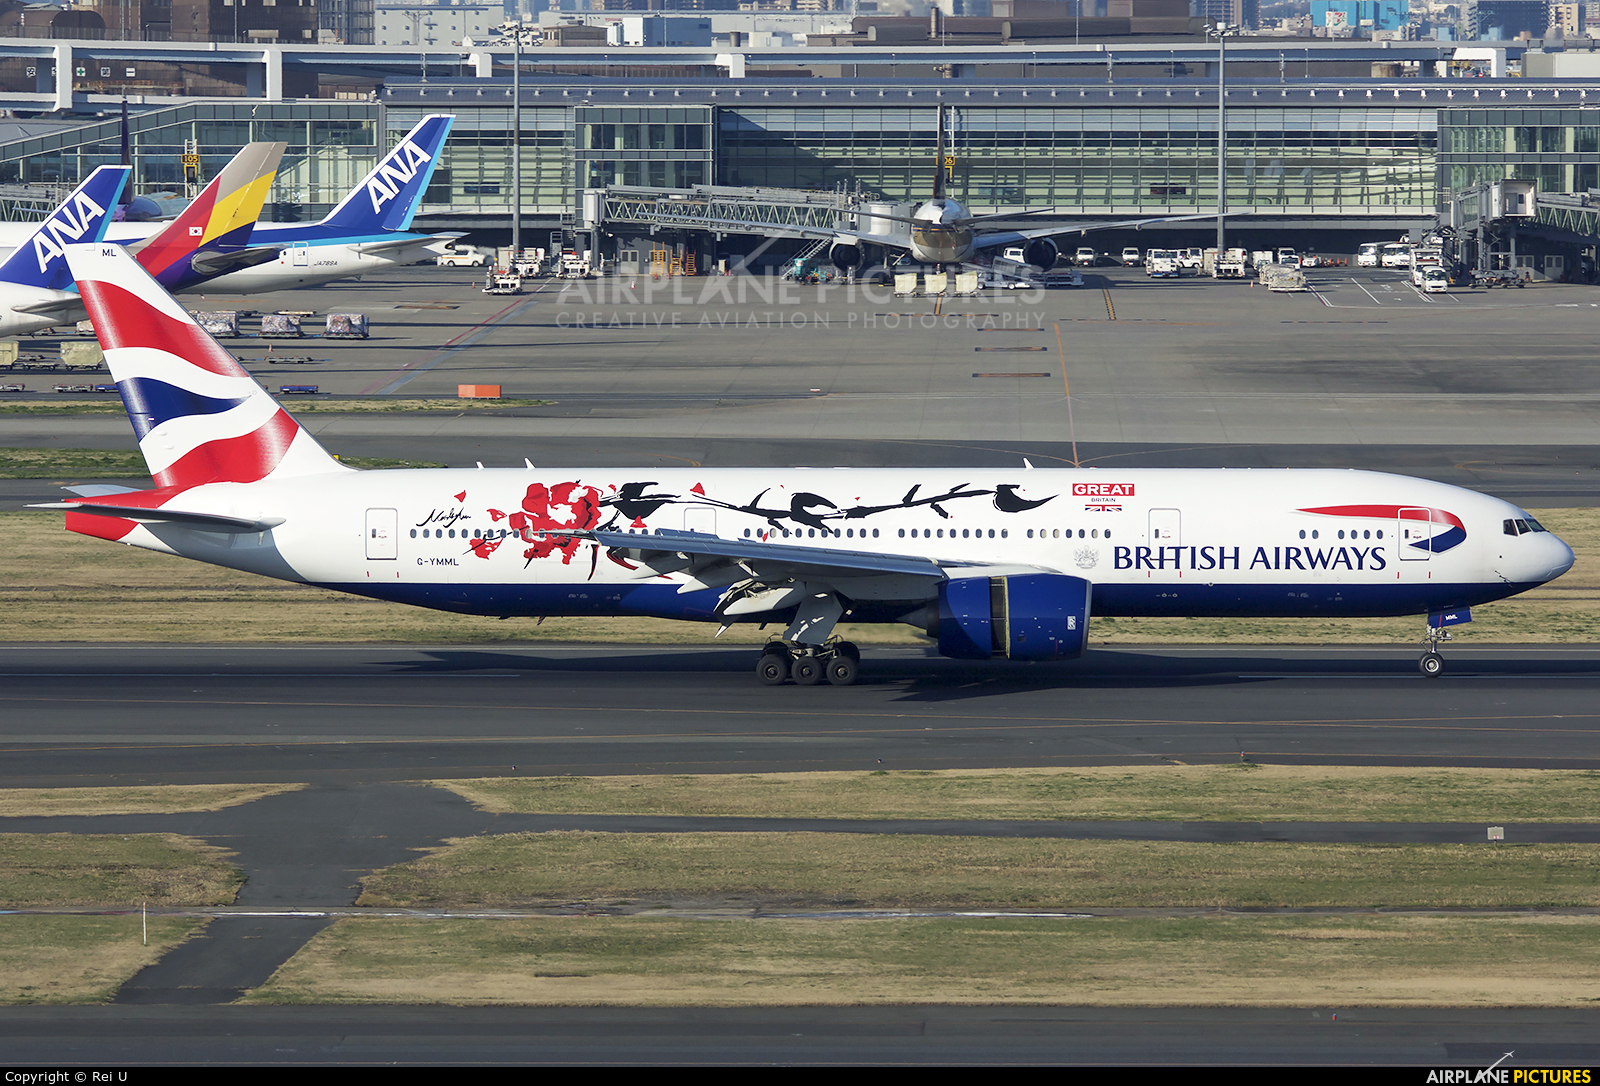 British Airways G-YMML aircraft at Tokyo - Haneda Intl